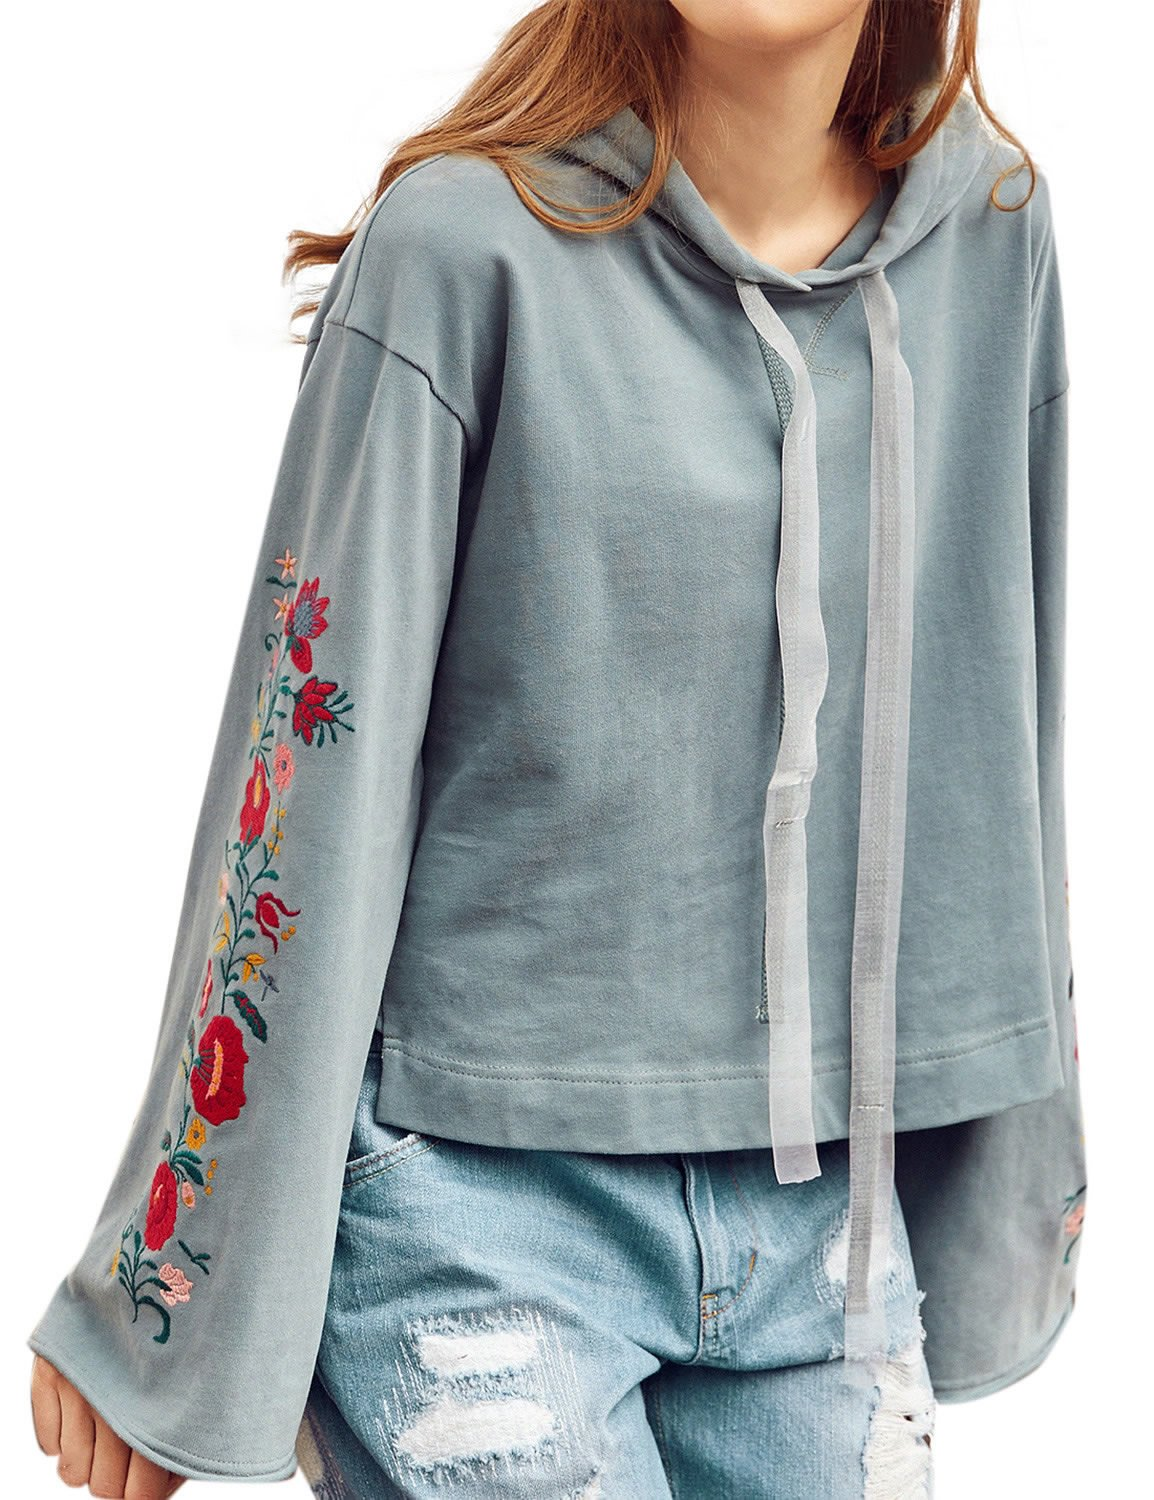 Artka Women's Vintage Embroidered Hoodie Cropped Pullover Cyan with Puff Sleeve